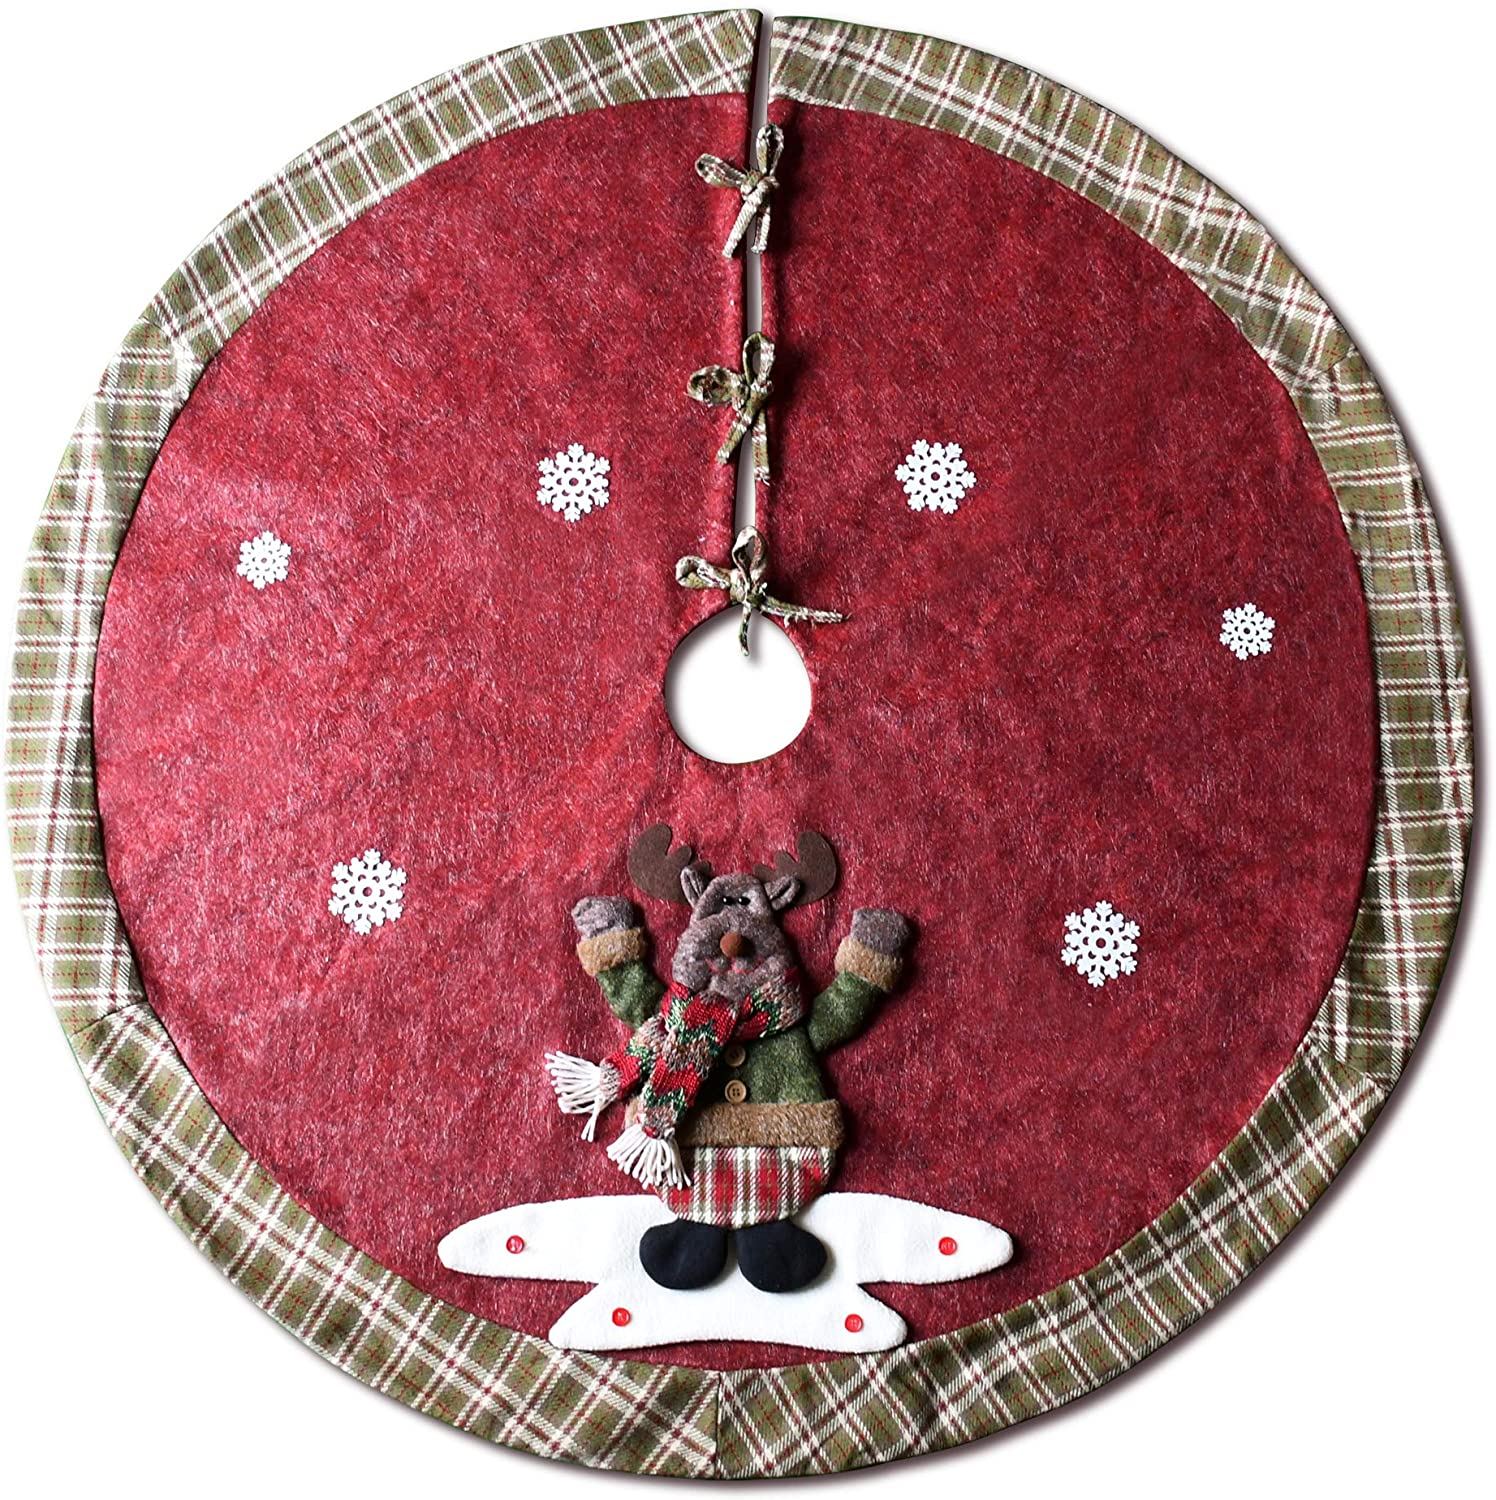 YuQi Christmas Tree Skirt, 48 inch Plaid Edge Linen Burlap Tree Skirt Mat with 3D Elk for Indoor Outdoor Christmas Decorations Home and Holiday Party